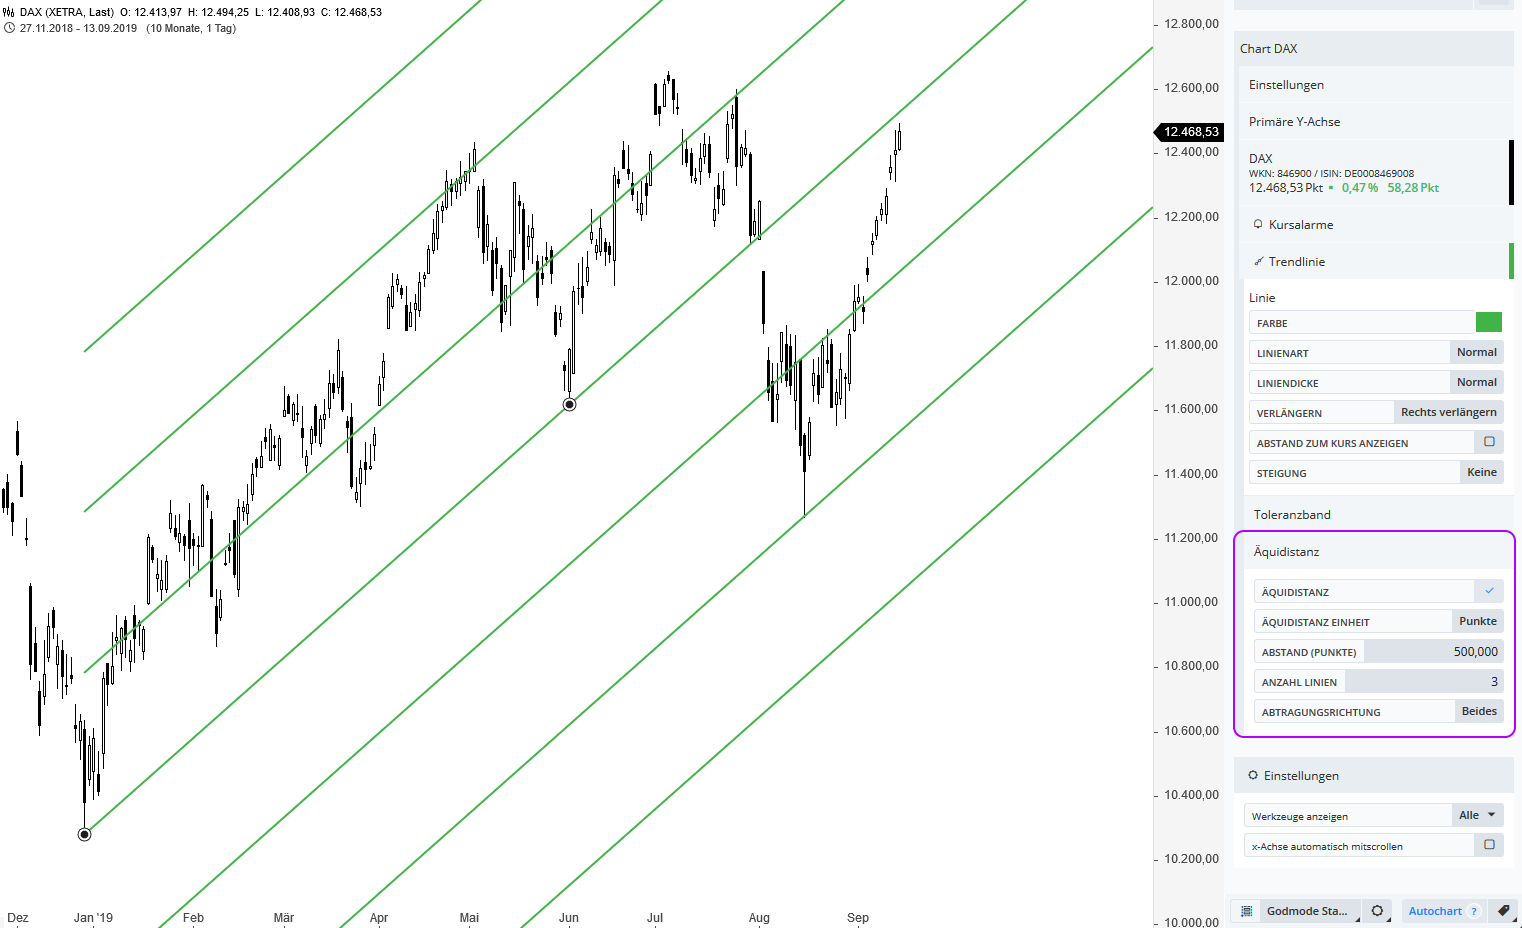 GUIDANTS-CHARTING-Das-große-Update-Thomas-May-GodmodeTrader.de-11